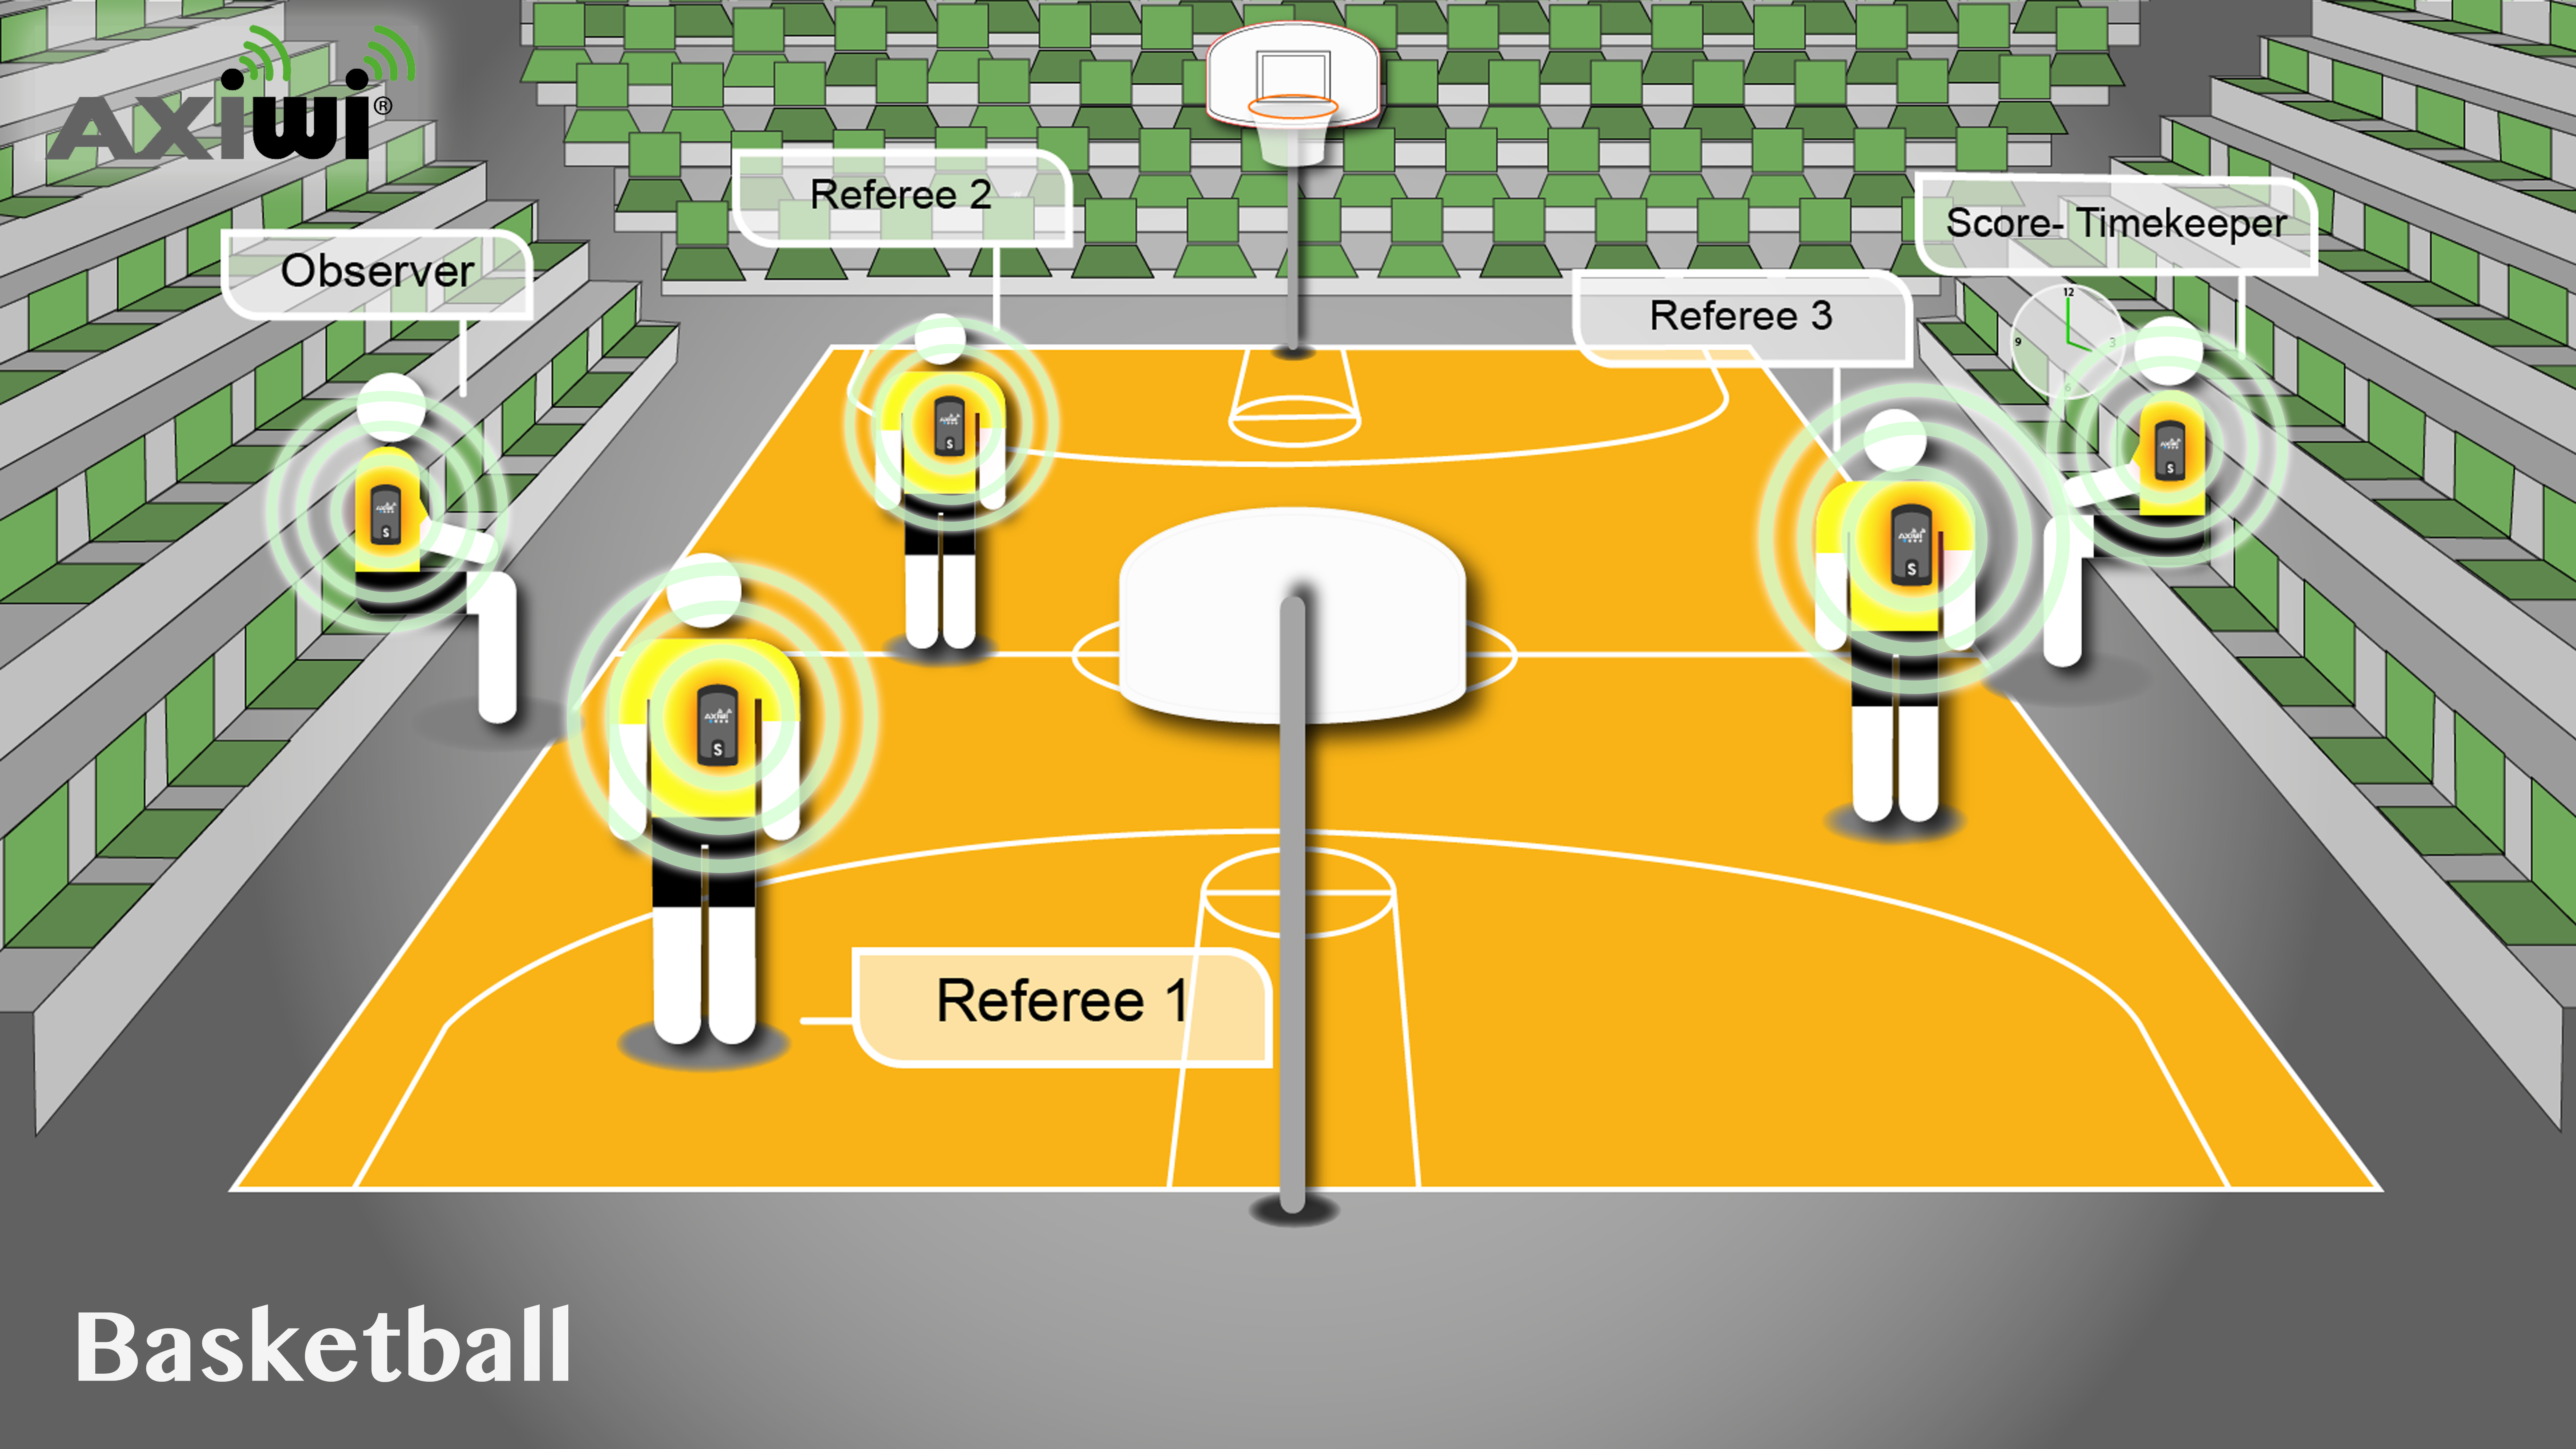 /axiwi-communication-system-referee-basketball